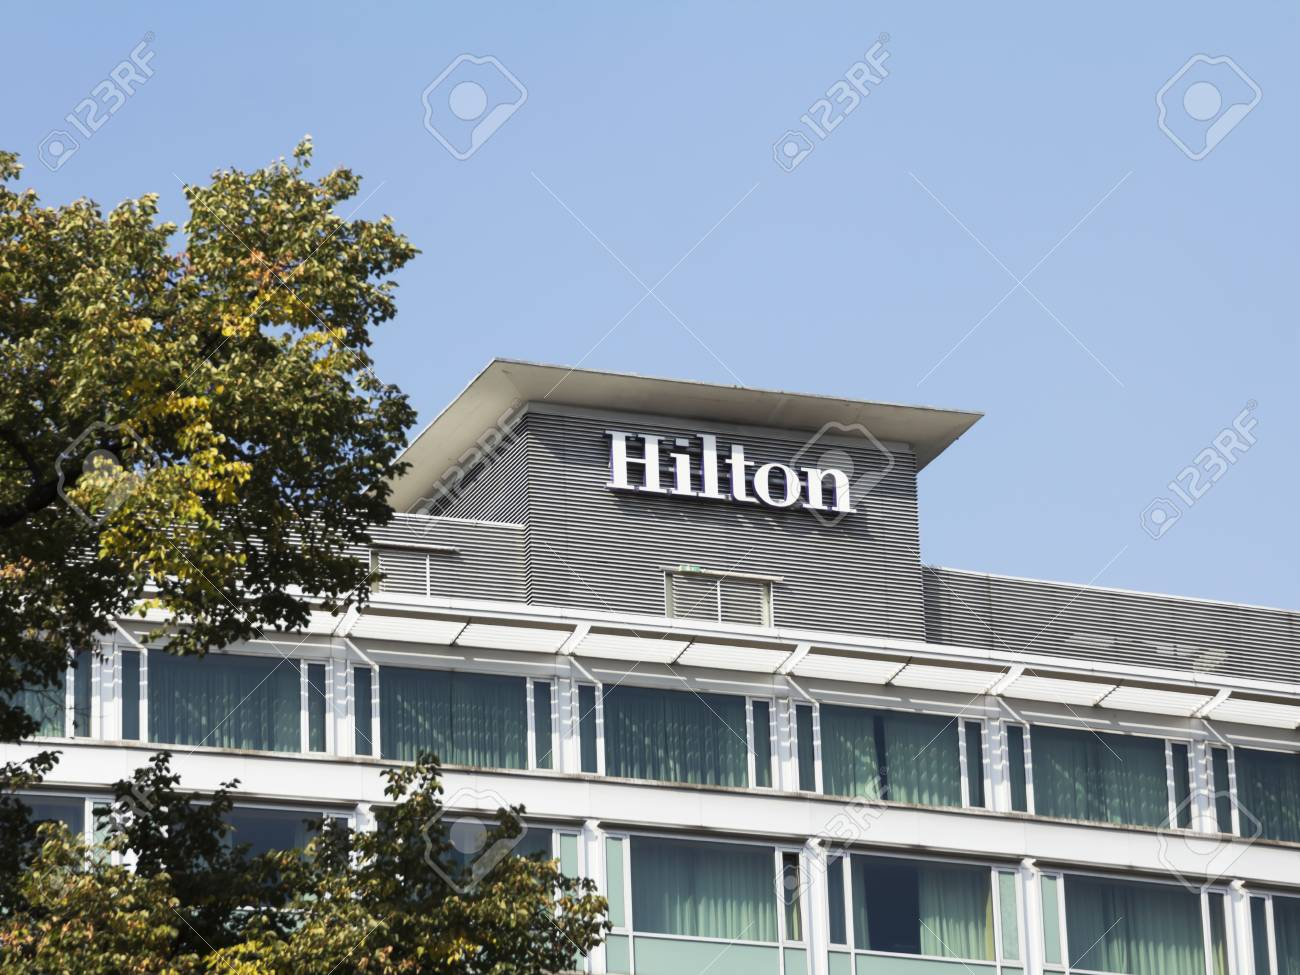 Hilton Hotel In Frankfurt Hilton Hotels And Resorts Has Over